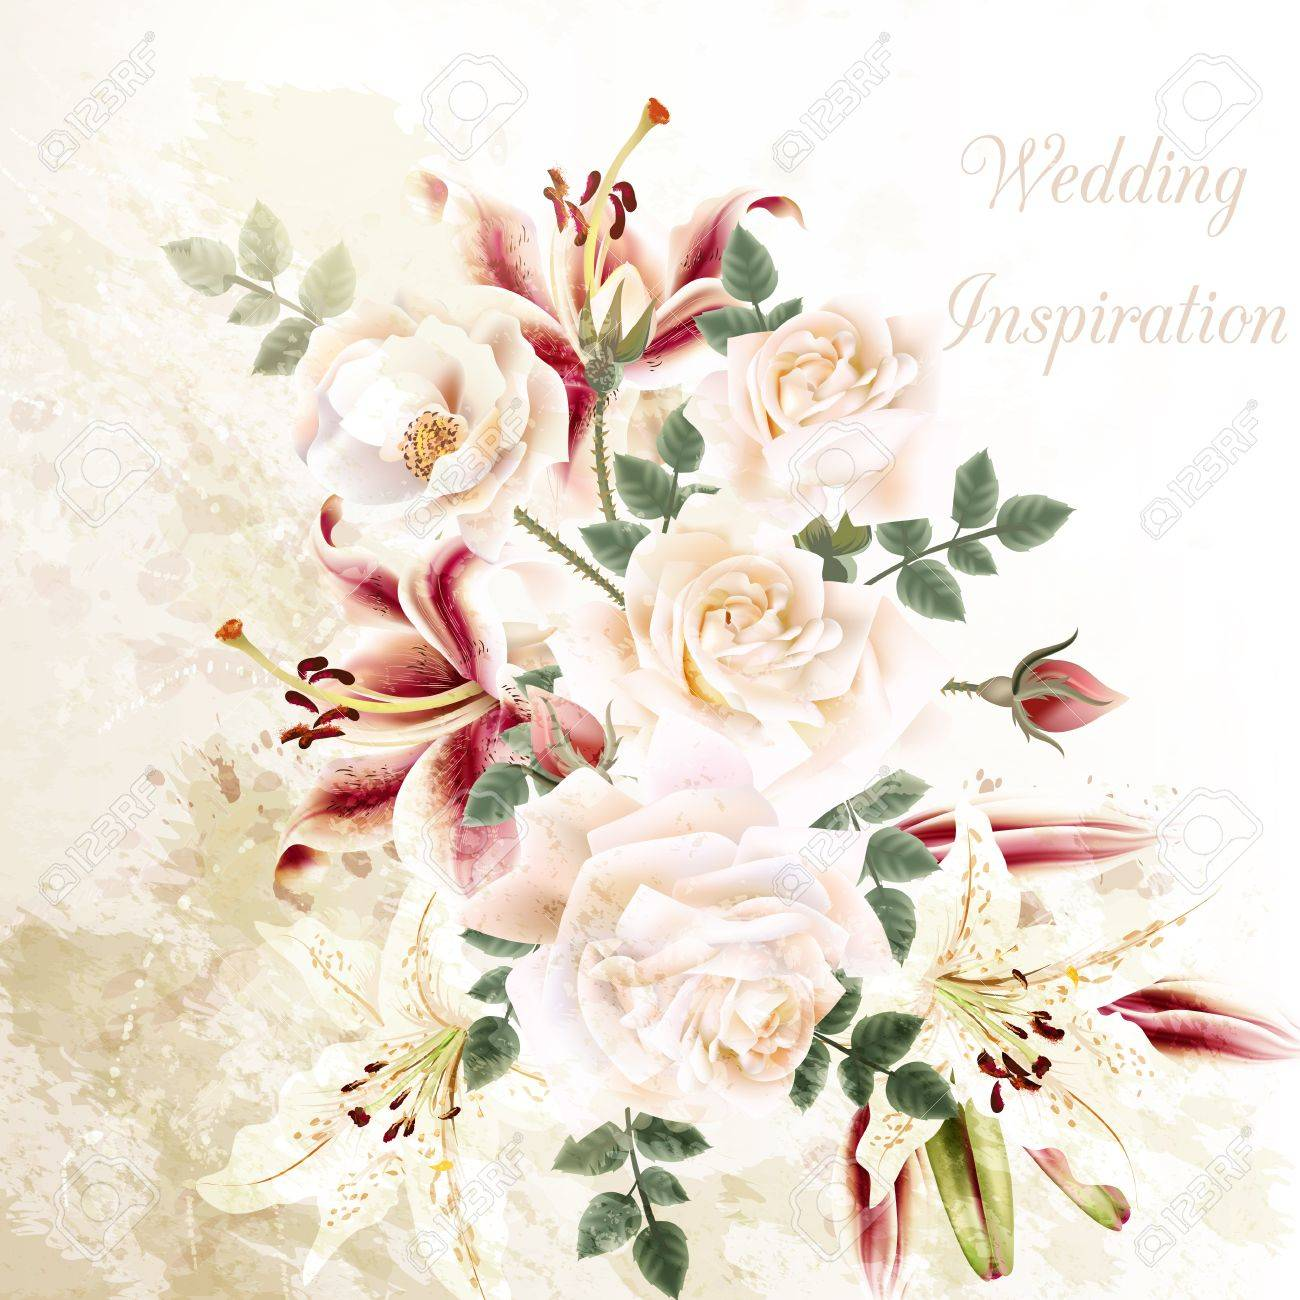 Grunge Illustration With Beautiful Roses And Lily Flowers Wedding ...